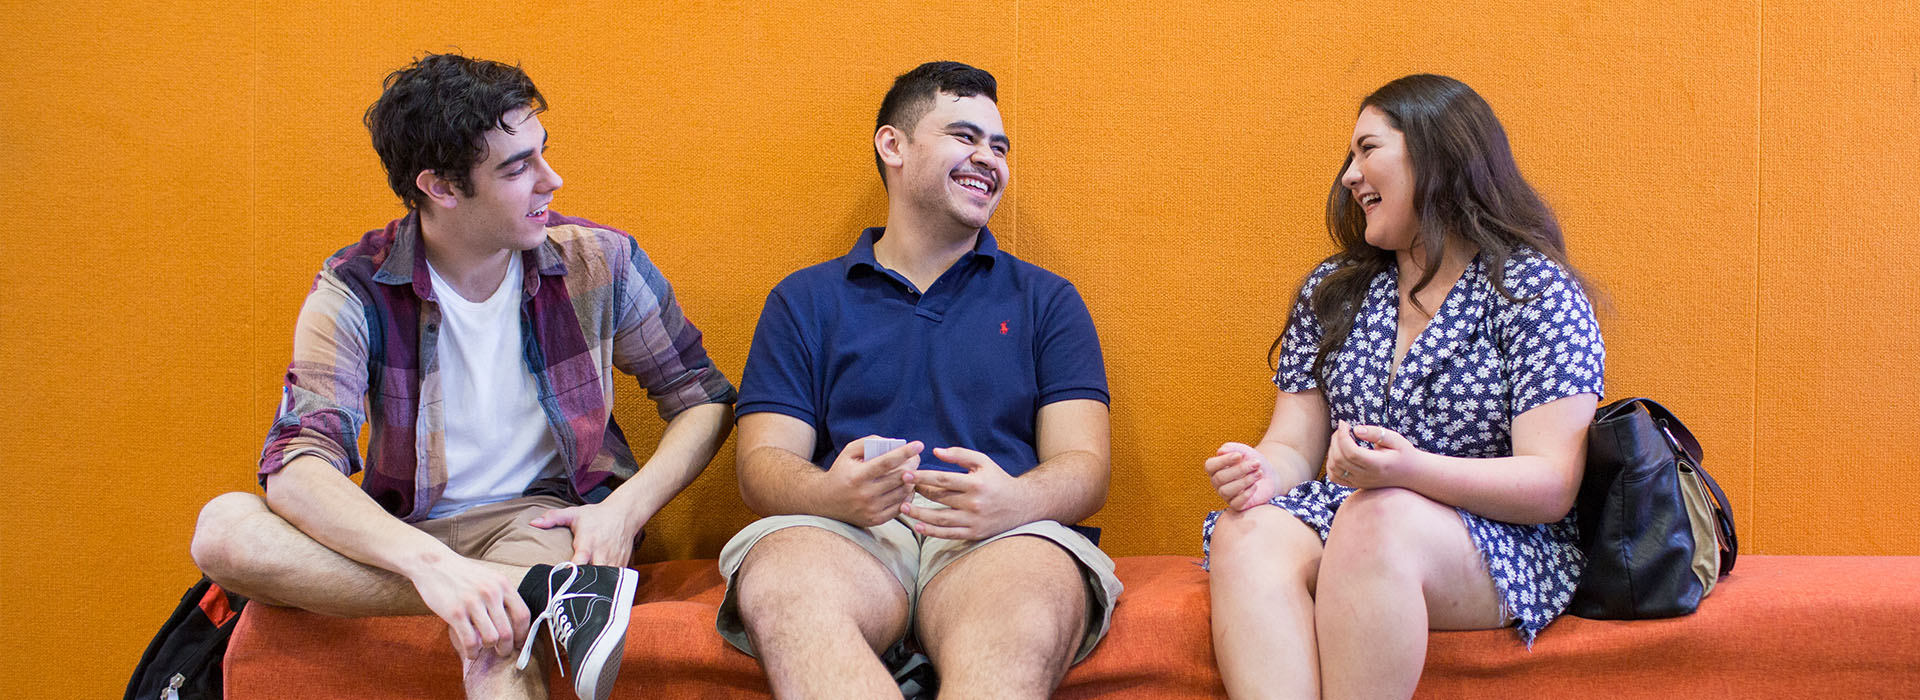 Three students talking and laughing. The wall behind them is bright orange.